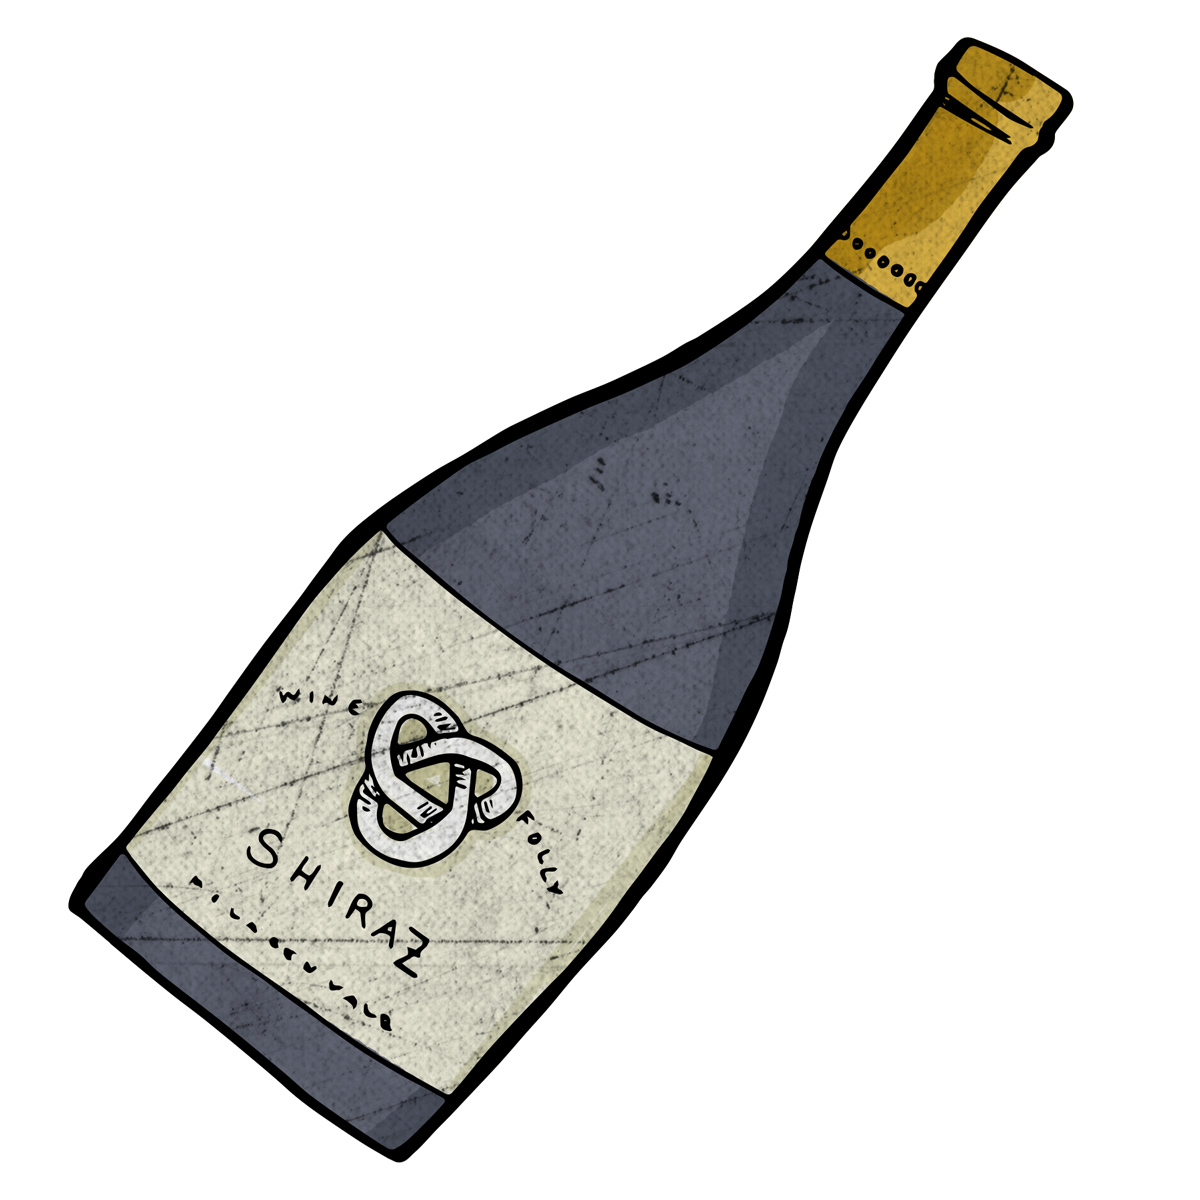 Shiraz-winter-illustration-winefolly